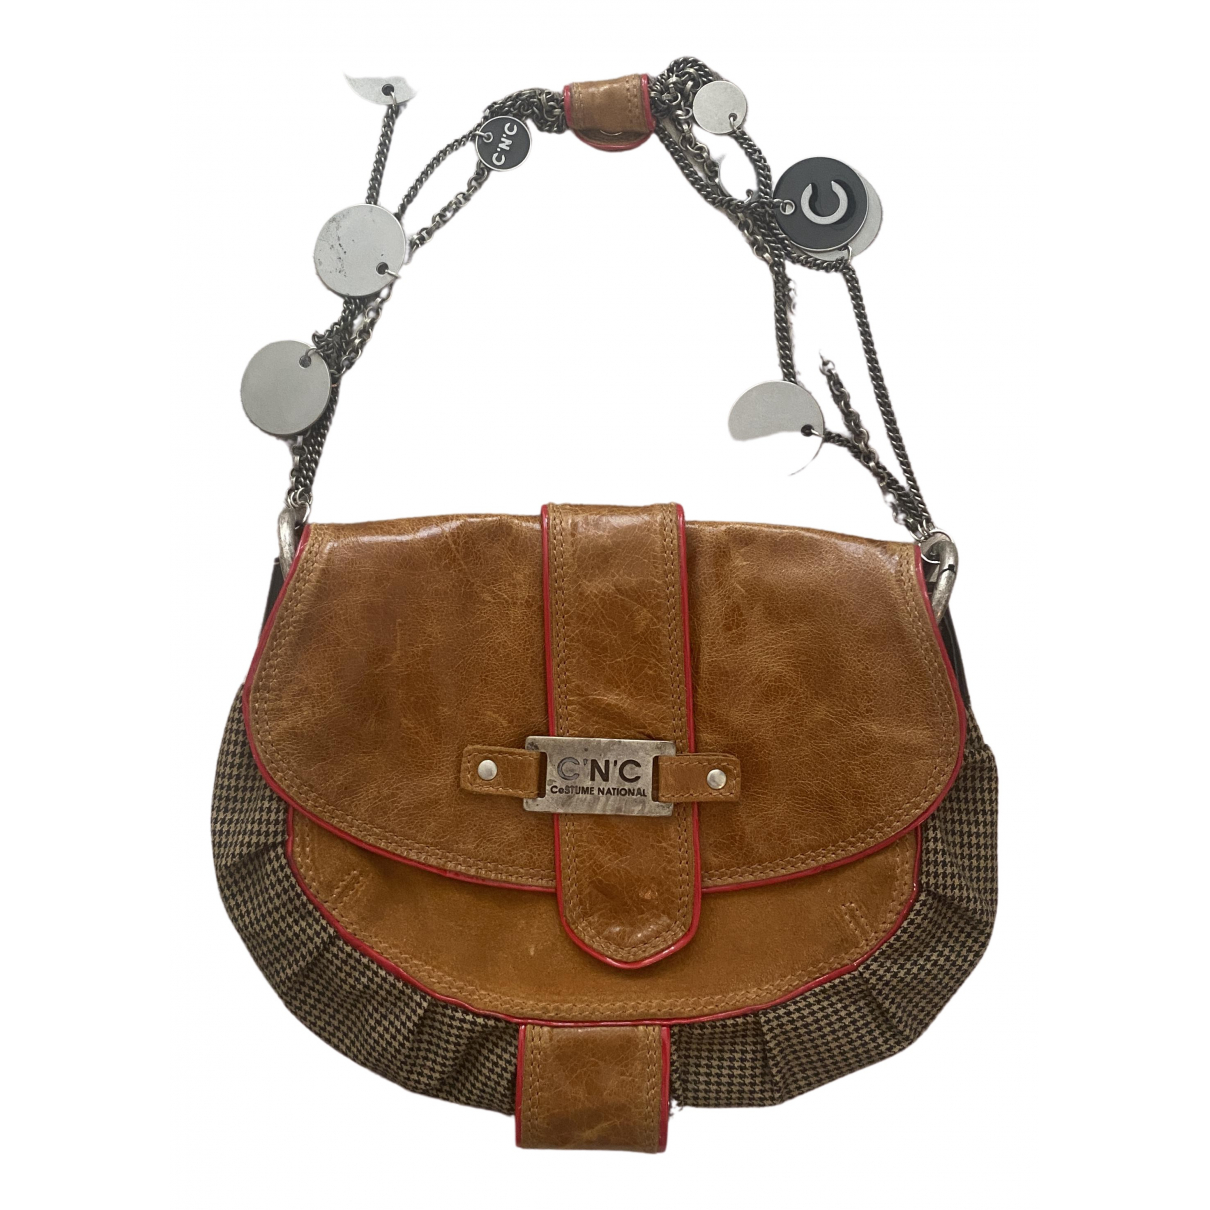 Cnc \N Beige Leather handbag for Women \N